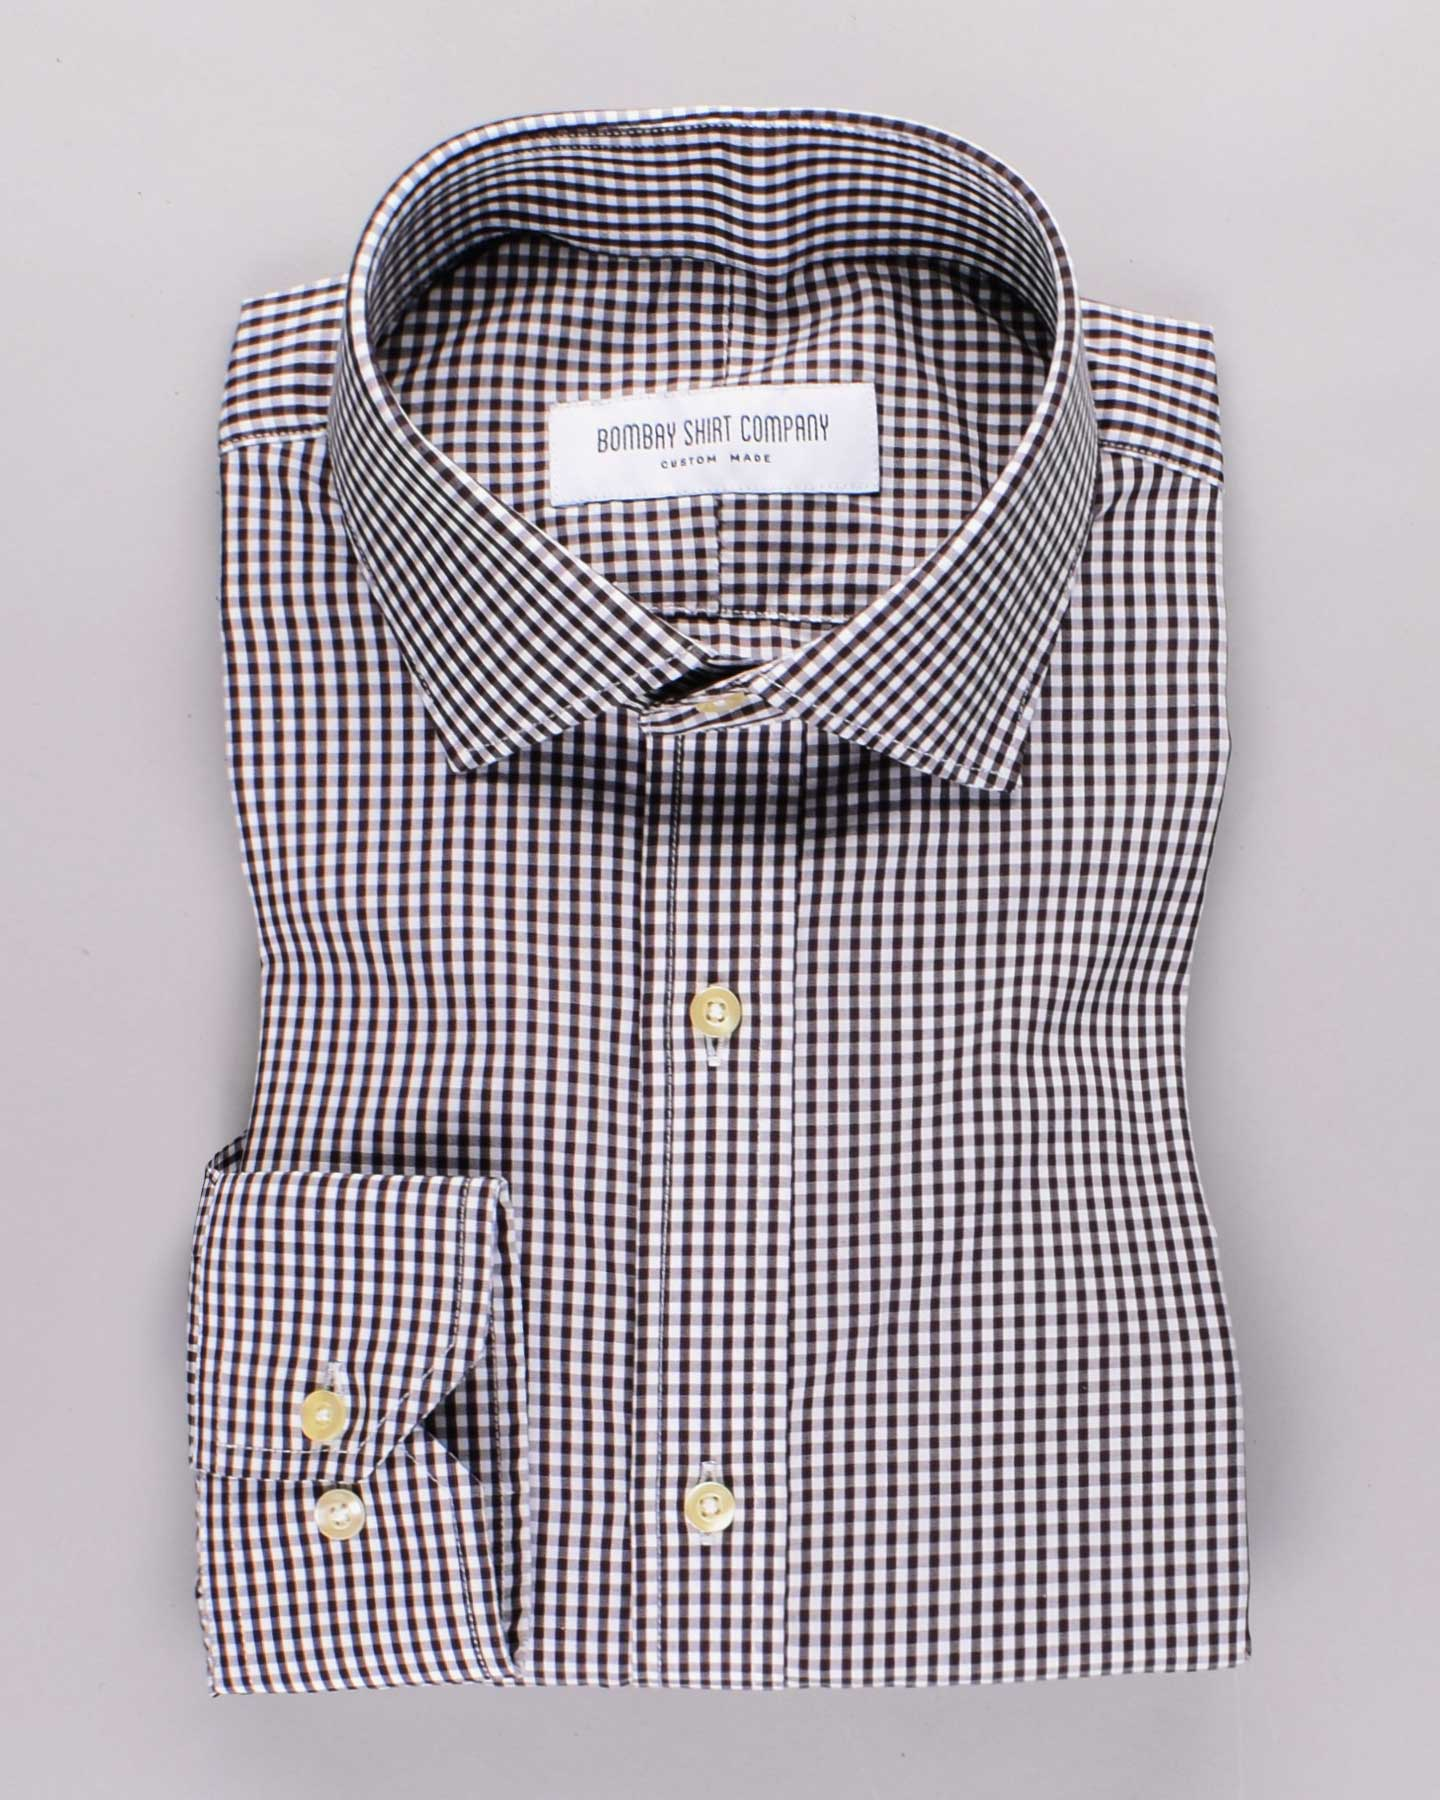 Luthai Monochrome Checks Shirt